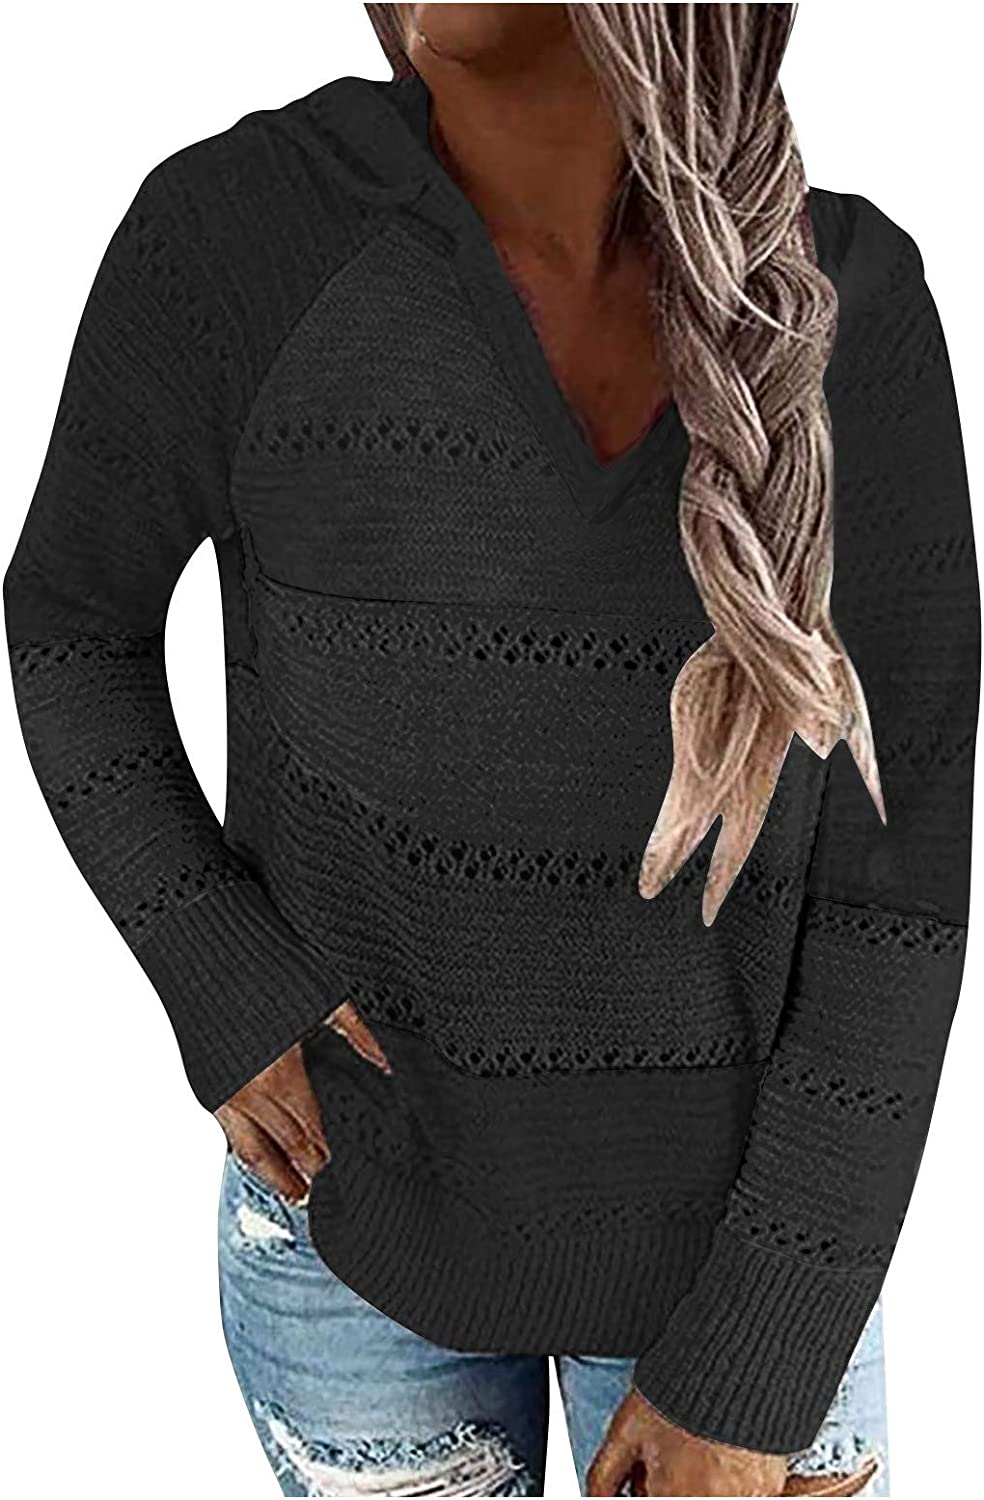 DOSUKRAI Fashion Casual Long Sleeves Hoodies for Womens V-Neck Pullover Hooded Solid Knitting Sweater Blouse